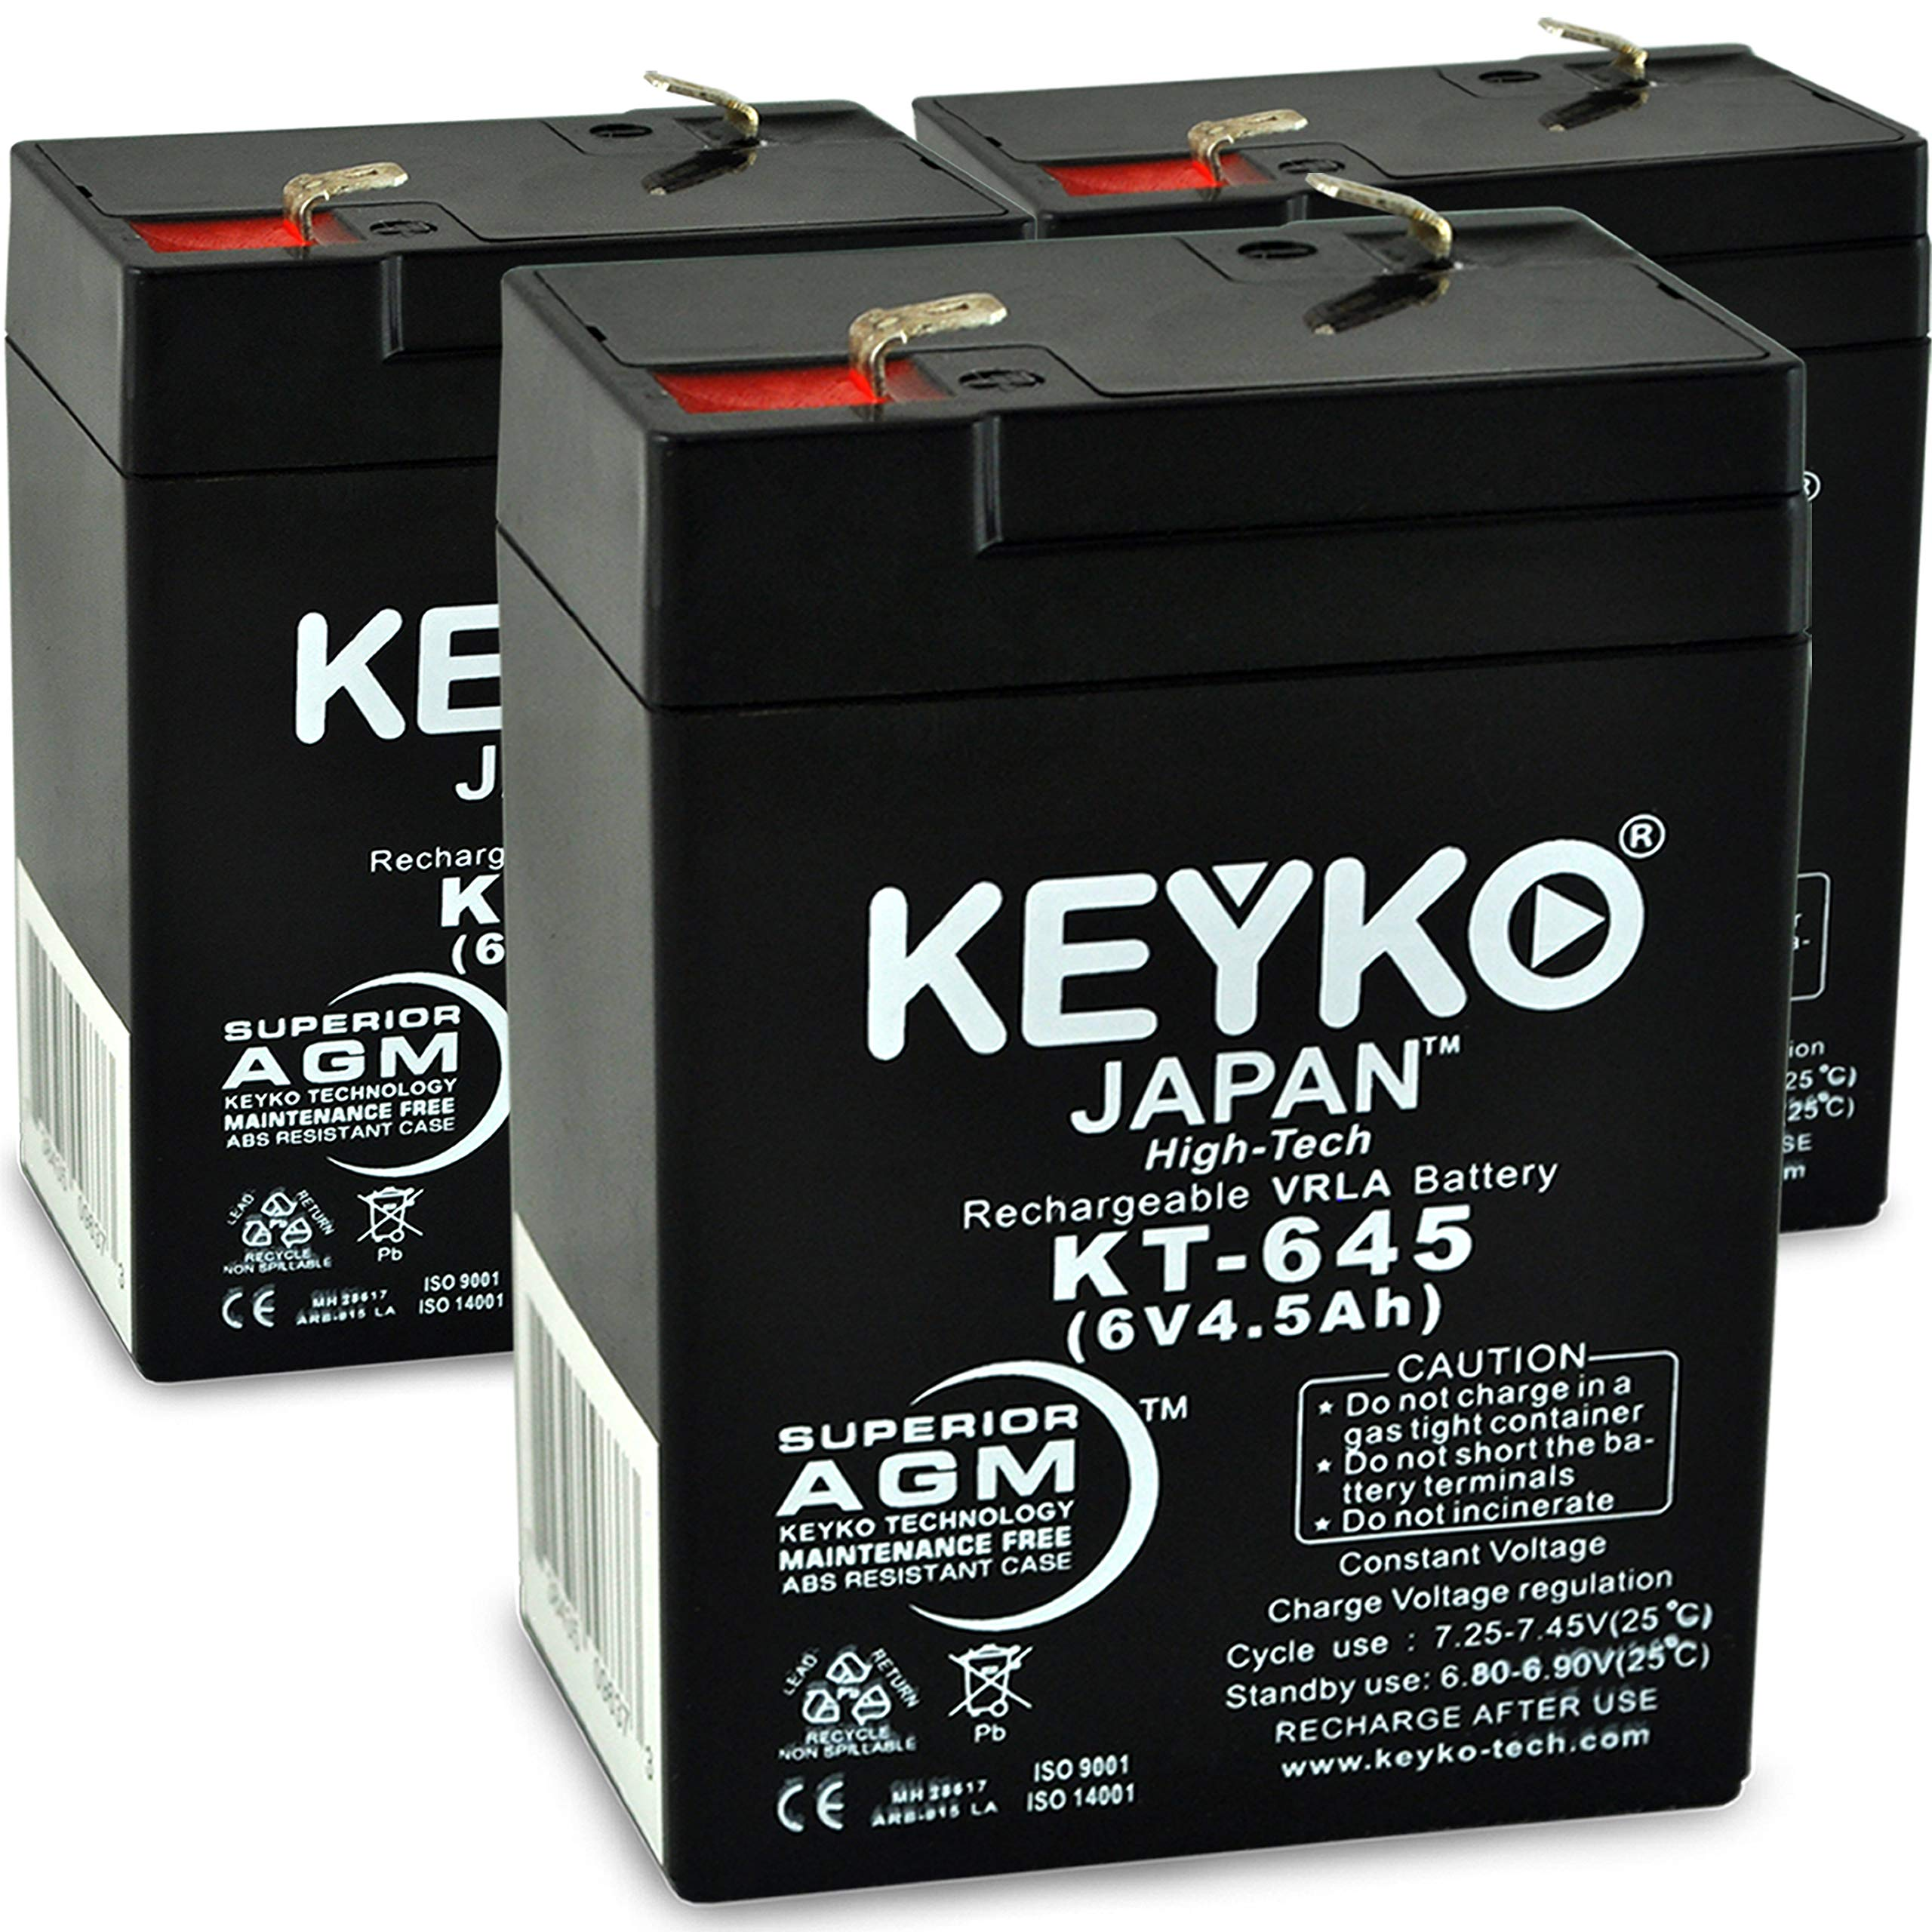 KEYKO Genuine KT-645 6V 4.5Ah Battery - 3 Pack Fresh & REAL 4.5 AMP AGM/SLA Sealed Lead Acid Rechargeable Replacement - F1 Terminal